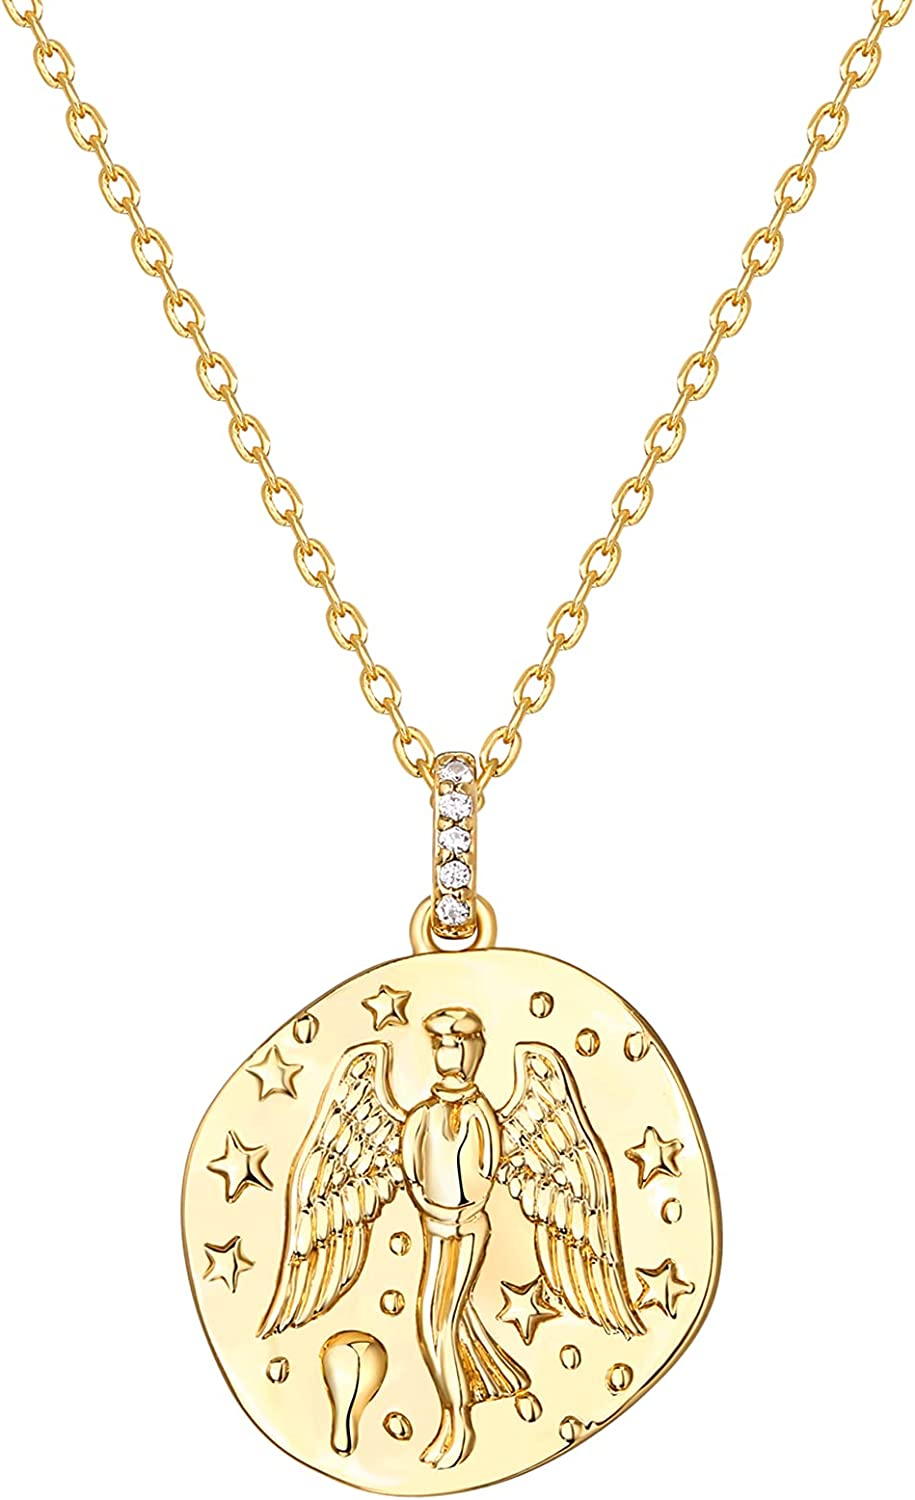 PAVOI 14K Gold Plated Necklace for Women | Jewelry for Women | 19x1.0x18.6MM Pendant Coin with Engraved Angel | Yellow Gold